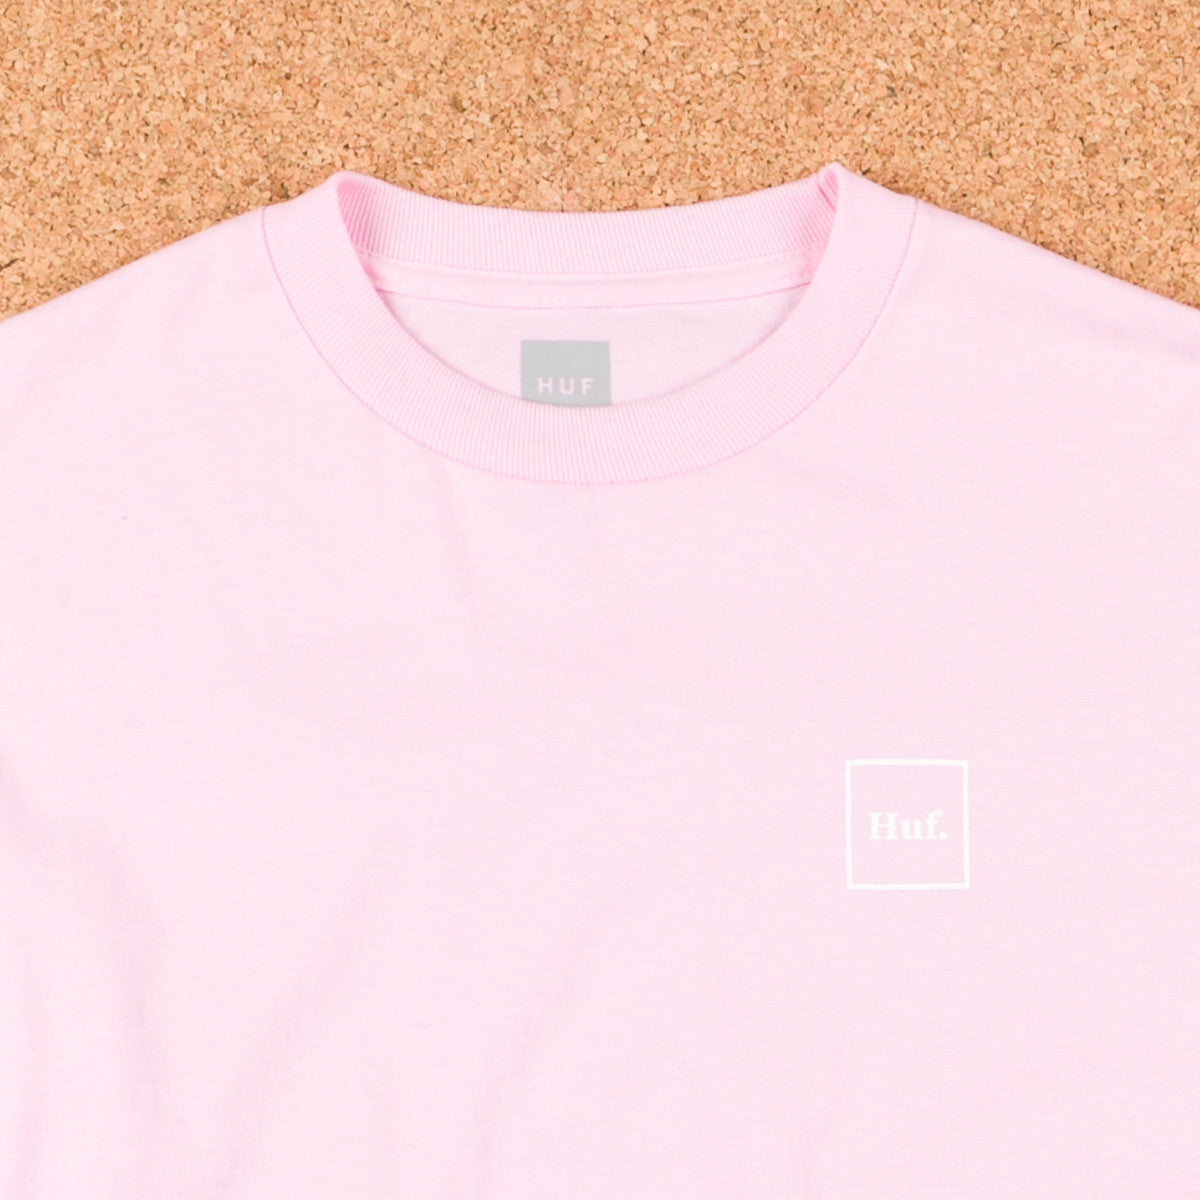 HUF Domestic Long Sleeve T-Shirt - Pink / White